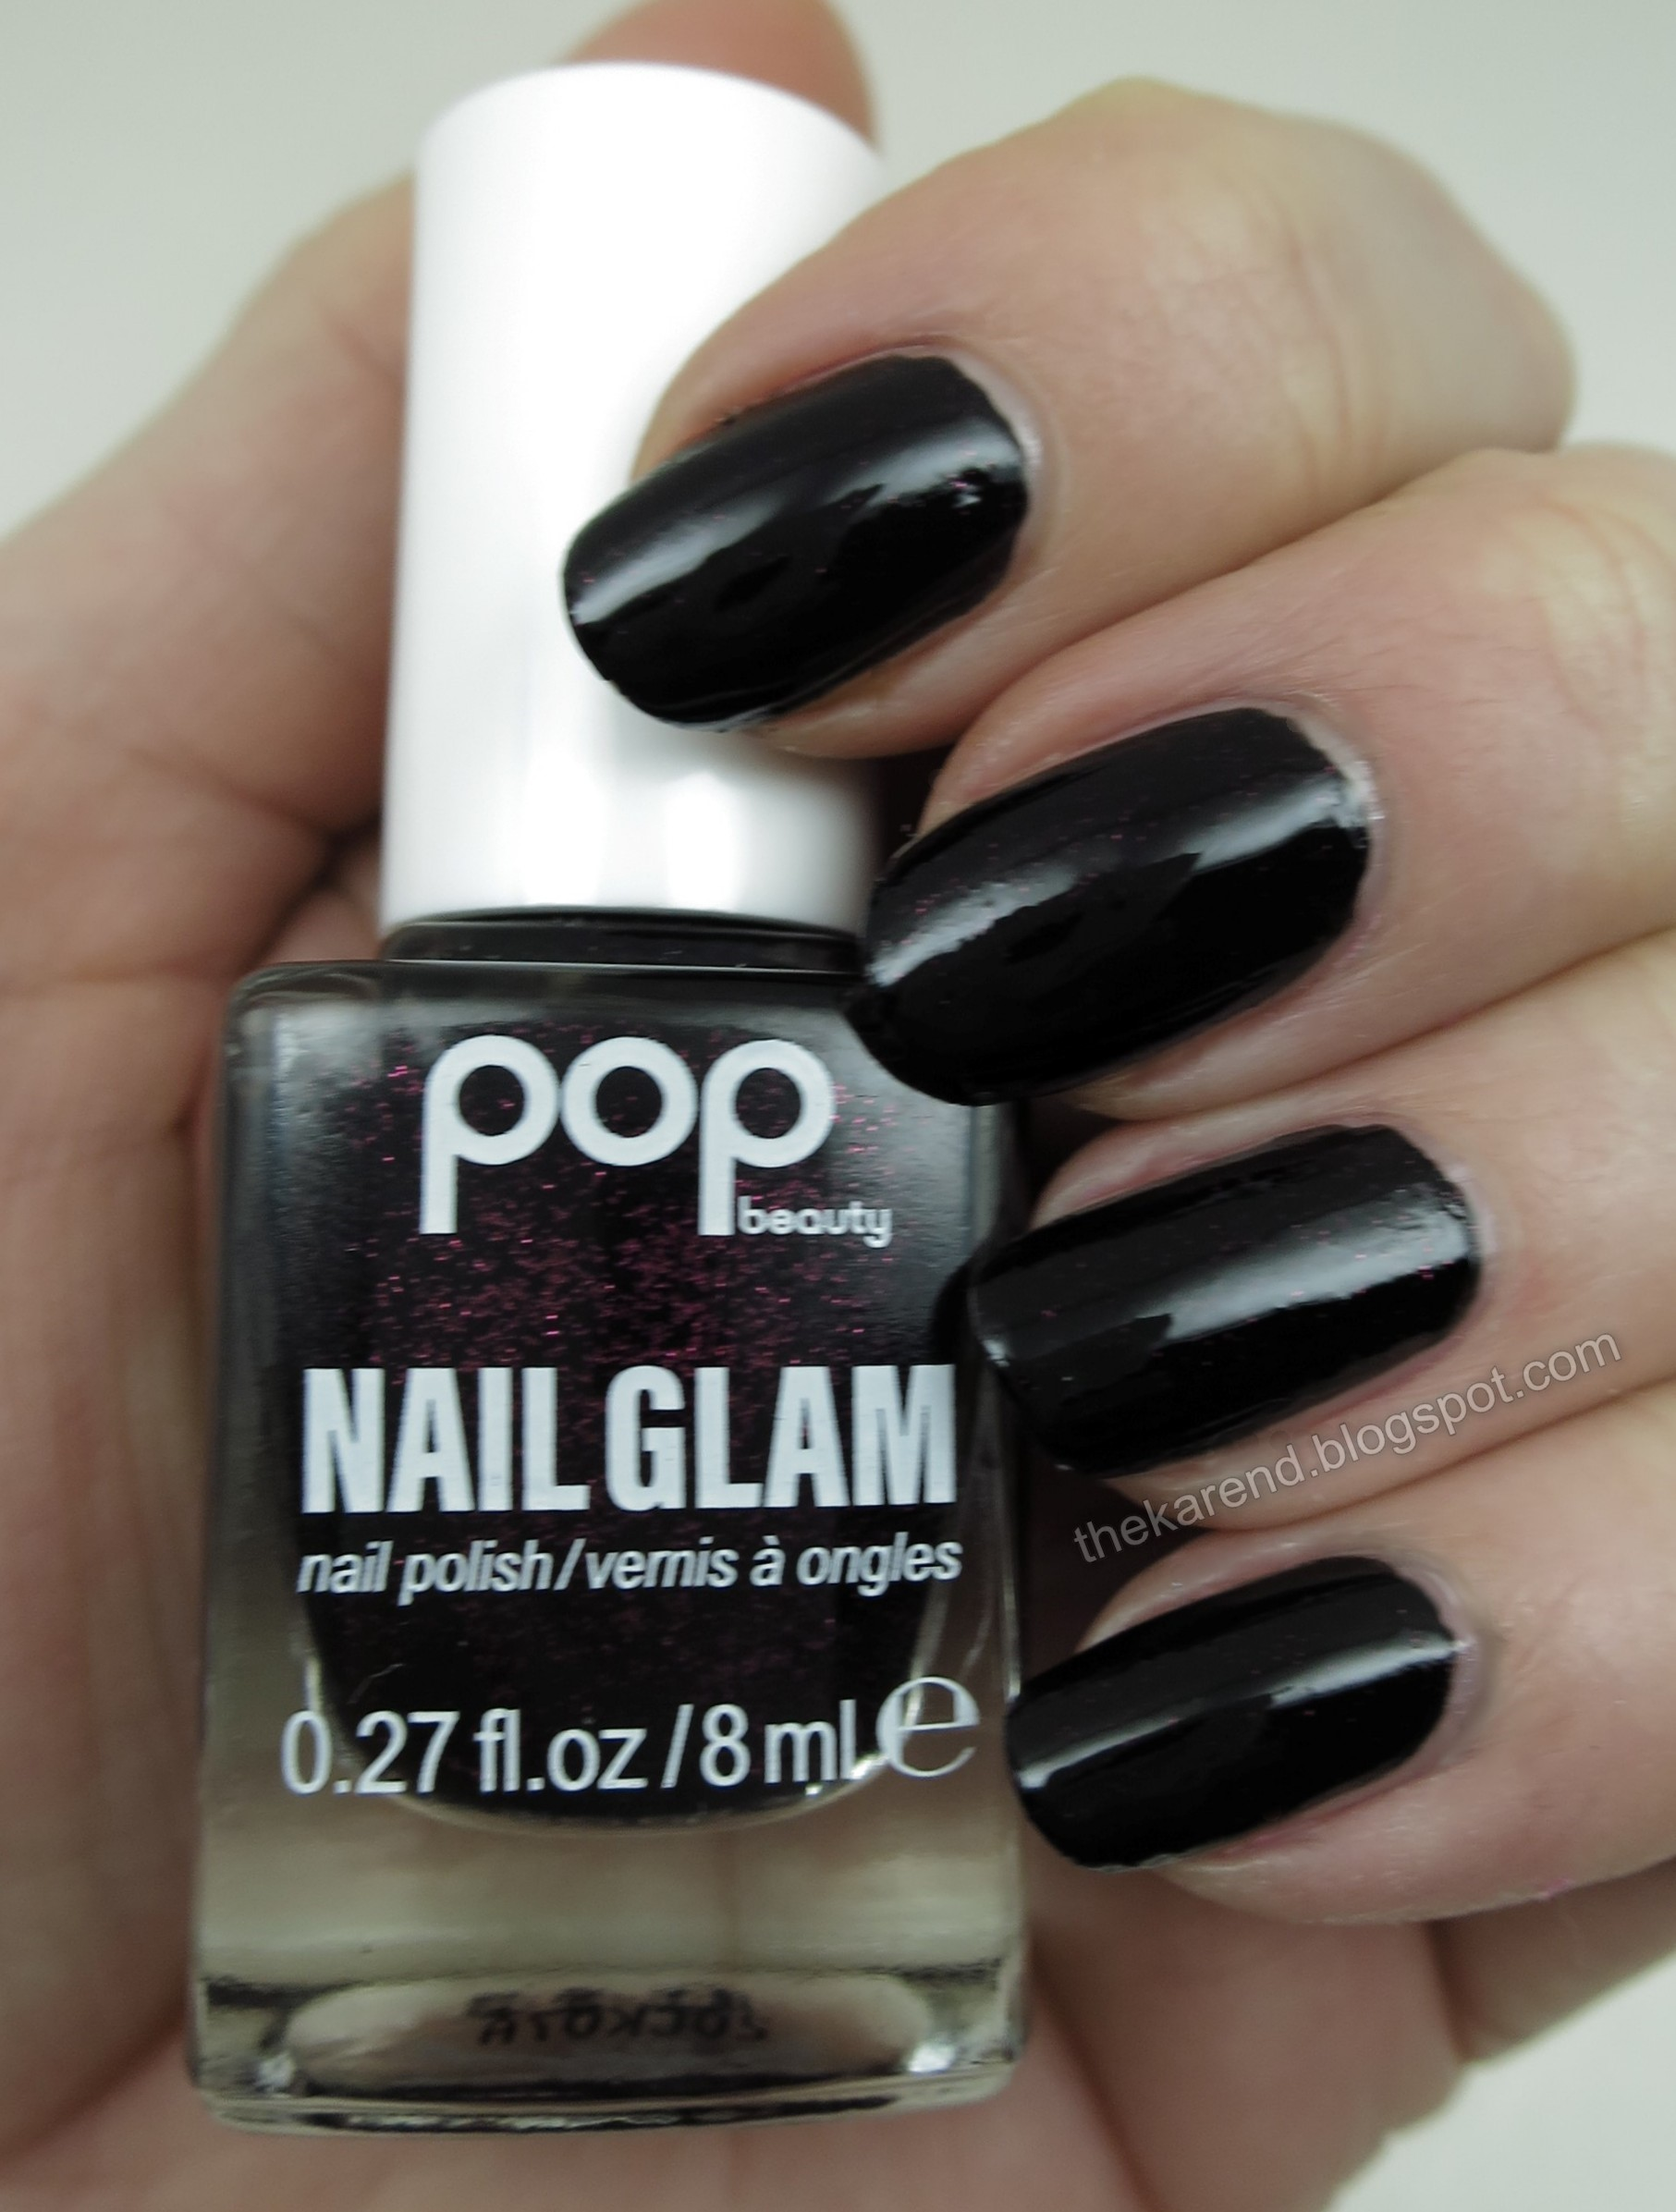 Pop Beauty Nail Glam Black Cherry